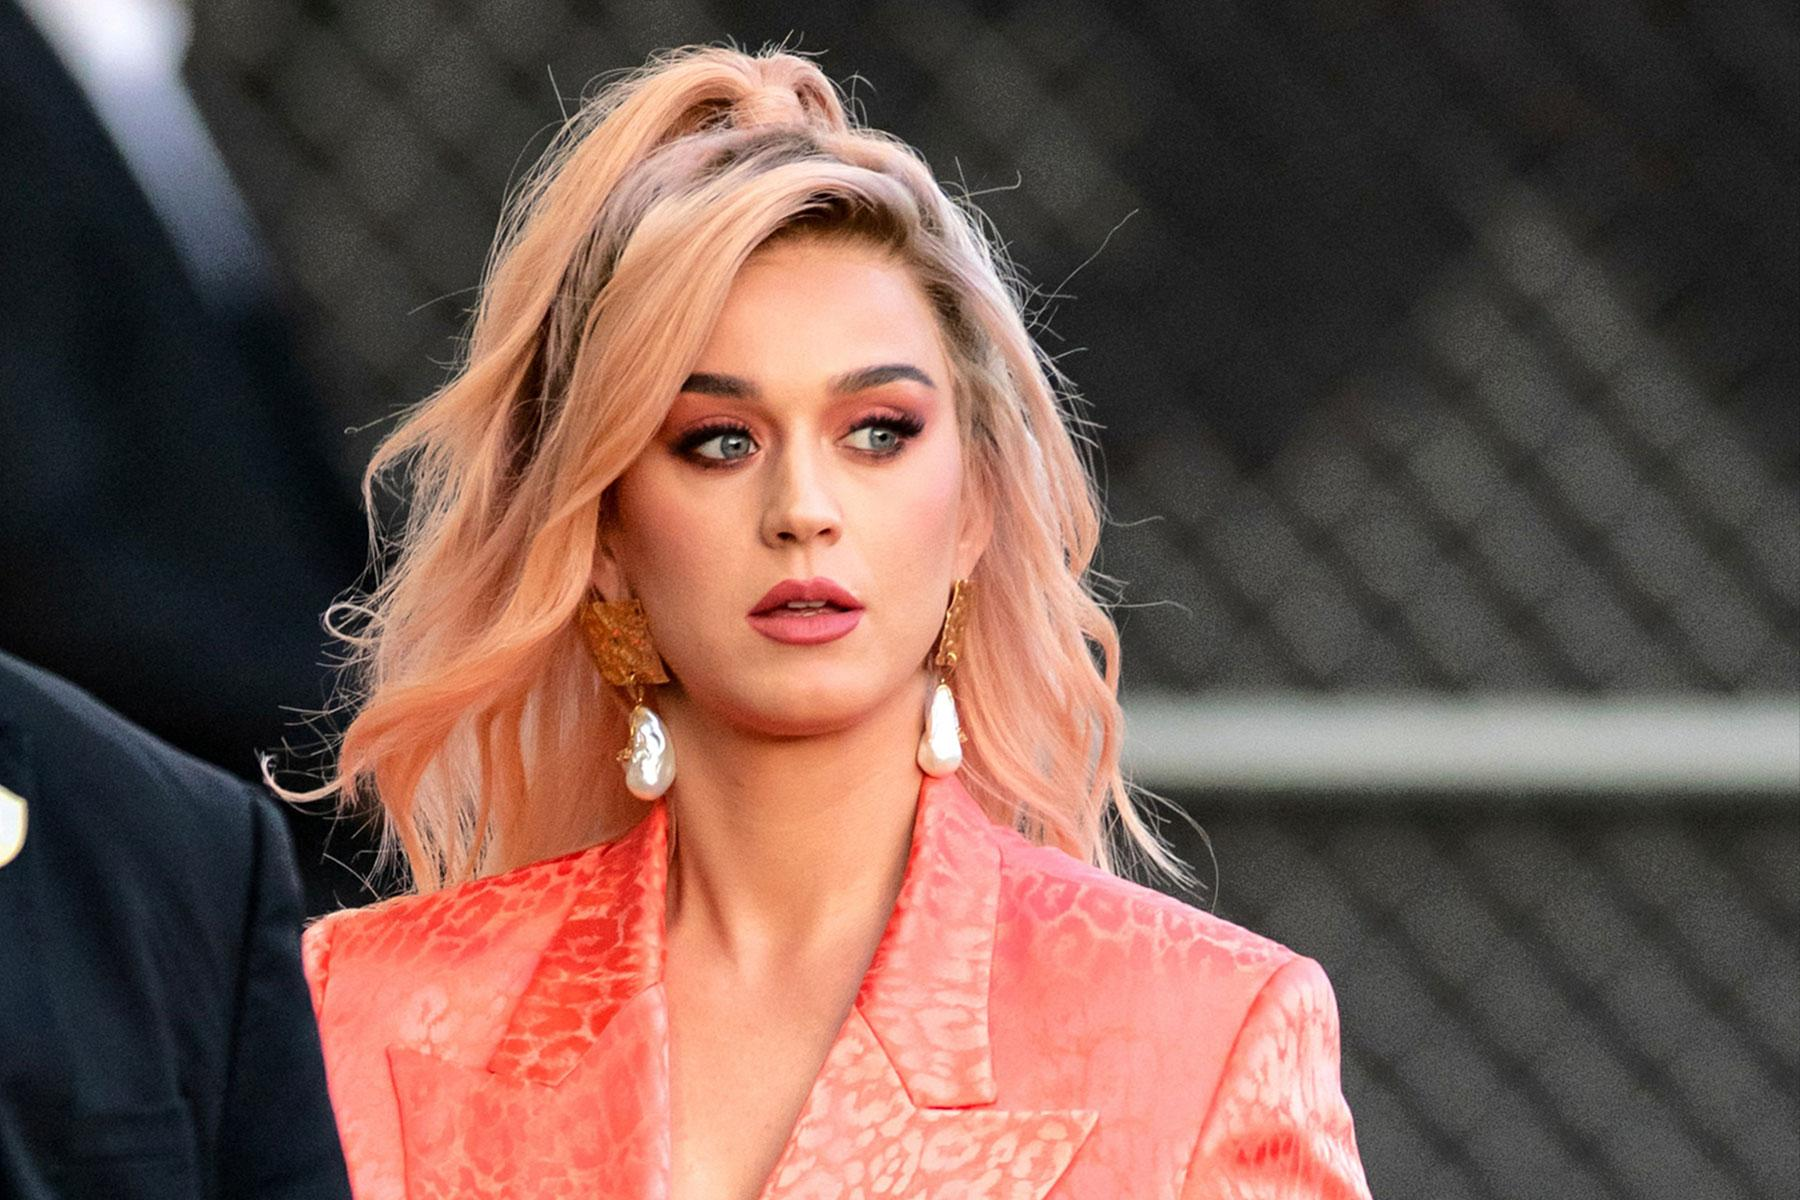 Sensational Singer Katy Perry teases her new 'Pokémon' song 'Electric' On Its 25th Anniversary!